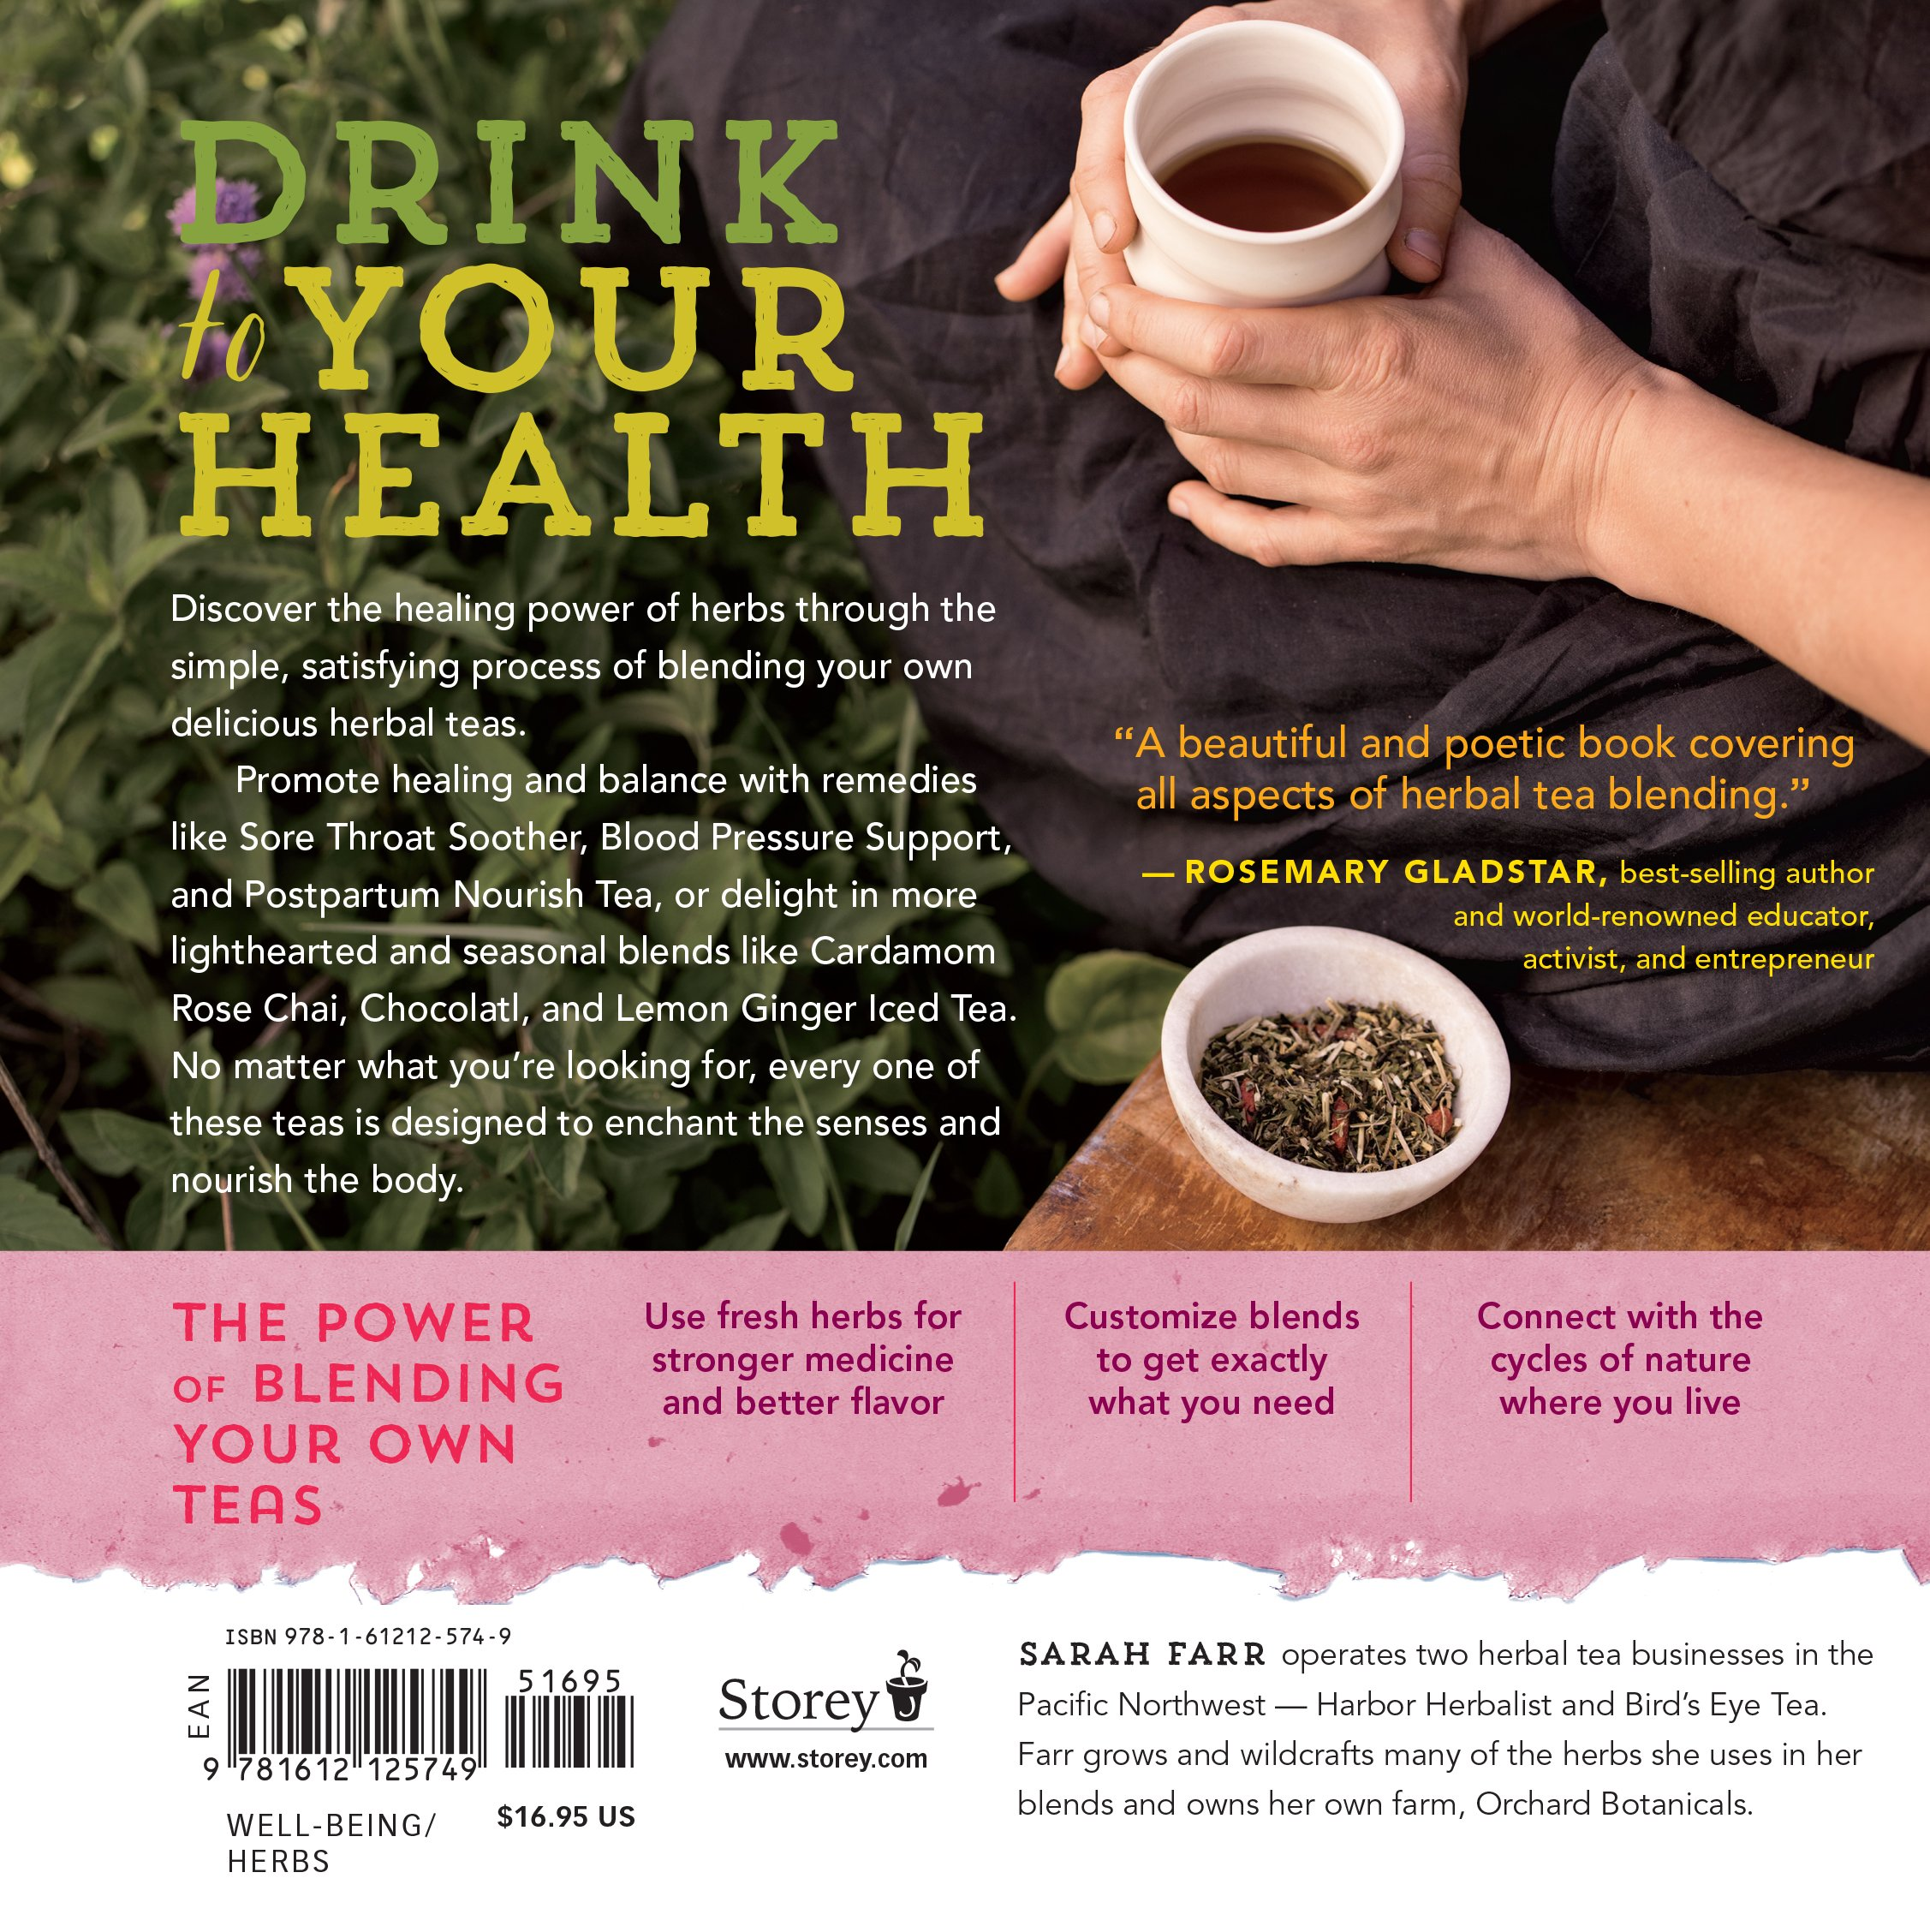 Blend gourmet herbal tea - Healing Herbal Teas Learn To Blend 101 Specially Formulated Teas For Stress Management Common Ailments Seasonal Health And Immune Support Sarah Farr